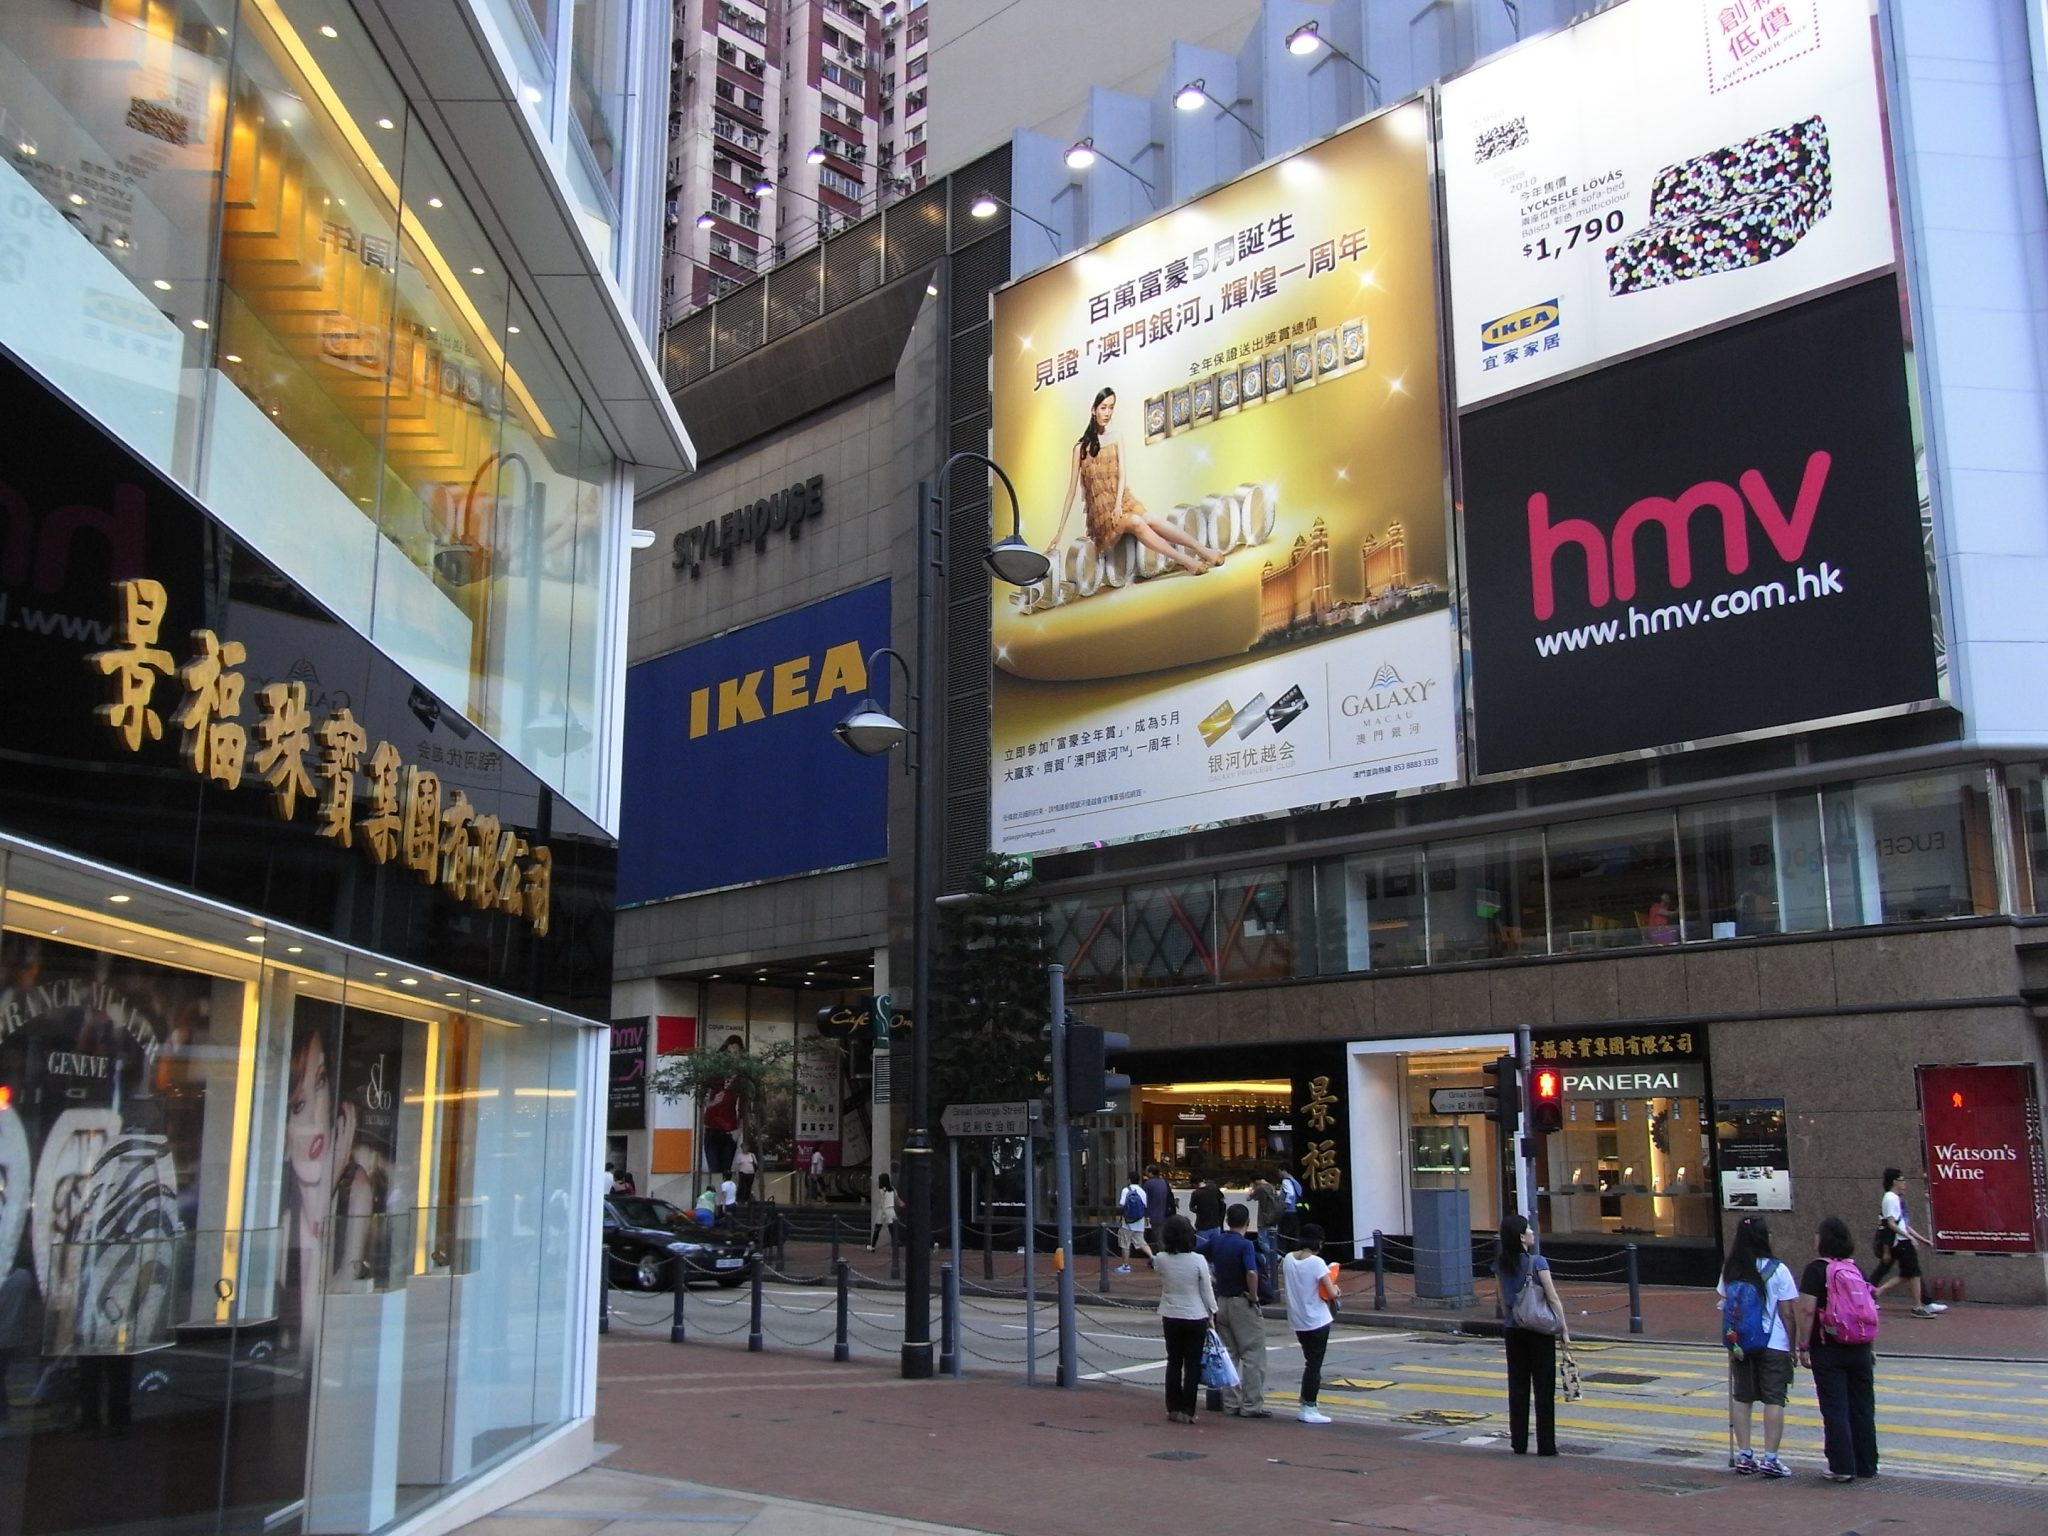 HK CWB Great George Street HMV outdoor ads King Fook Jewellery shop signs IKEA May 2012